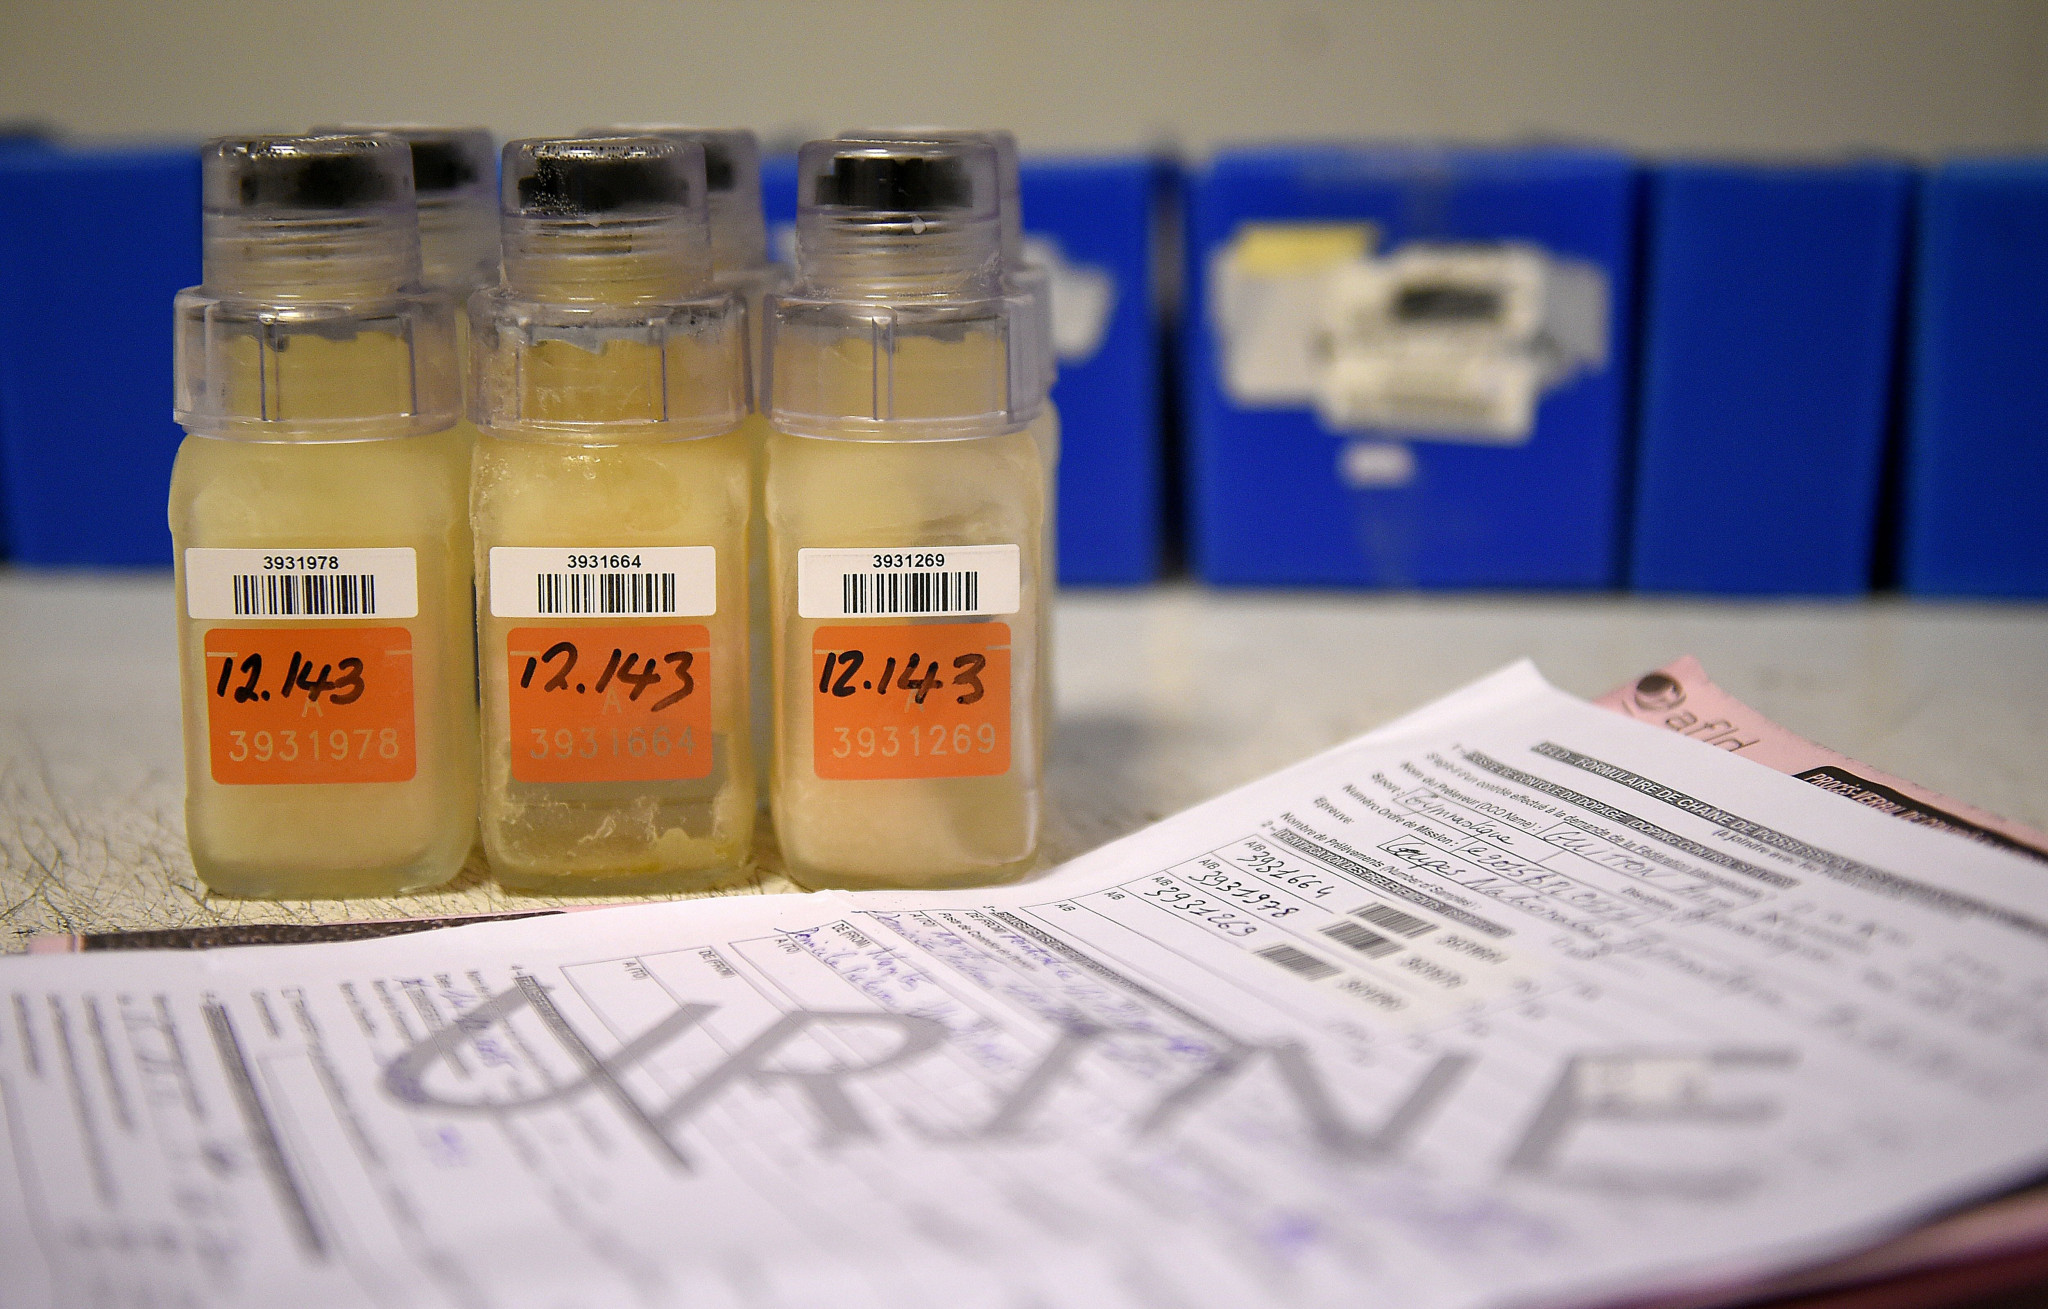 WADA officially suspends accreditation of Paris Laboratory